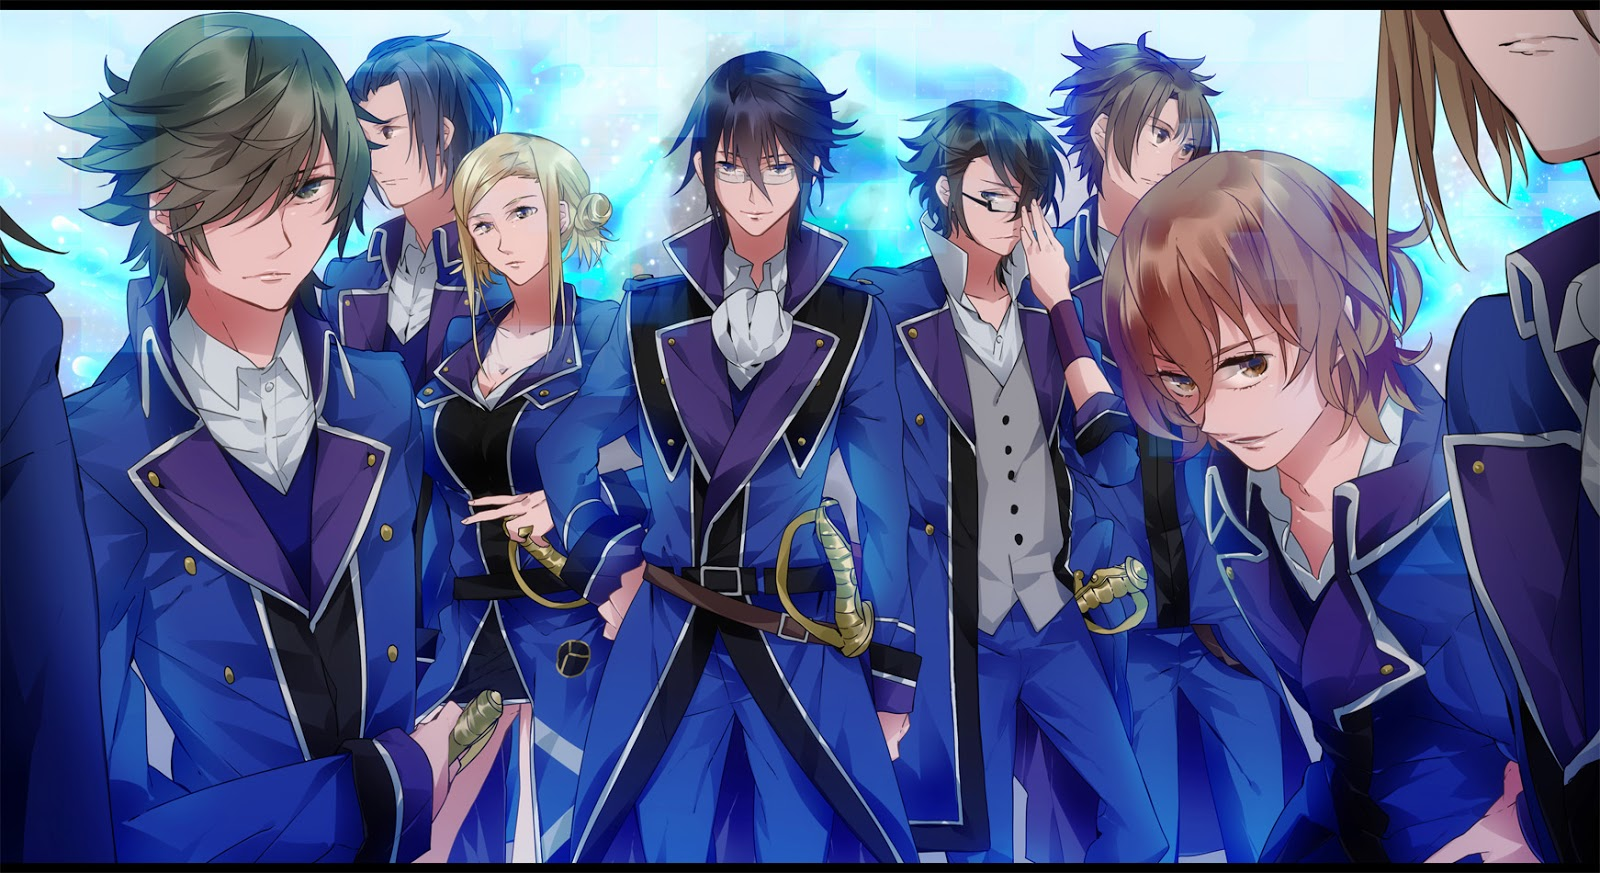 Project Wallpaper 1600x873 Your daily Anime Wallpaper and Fan Art 1600x873